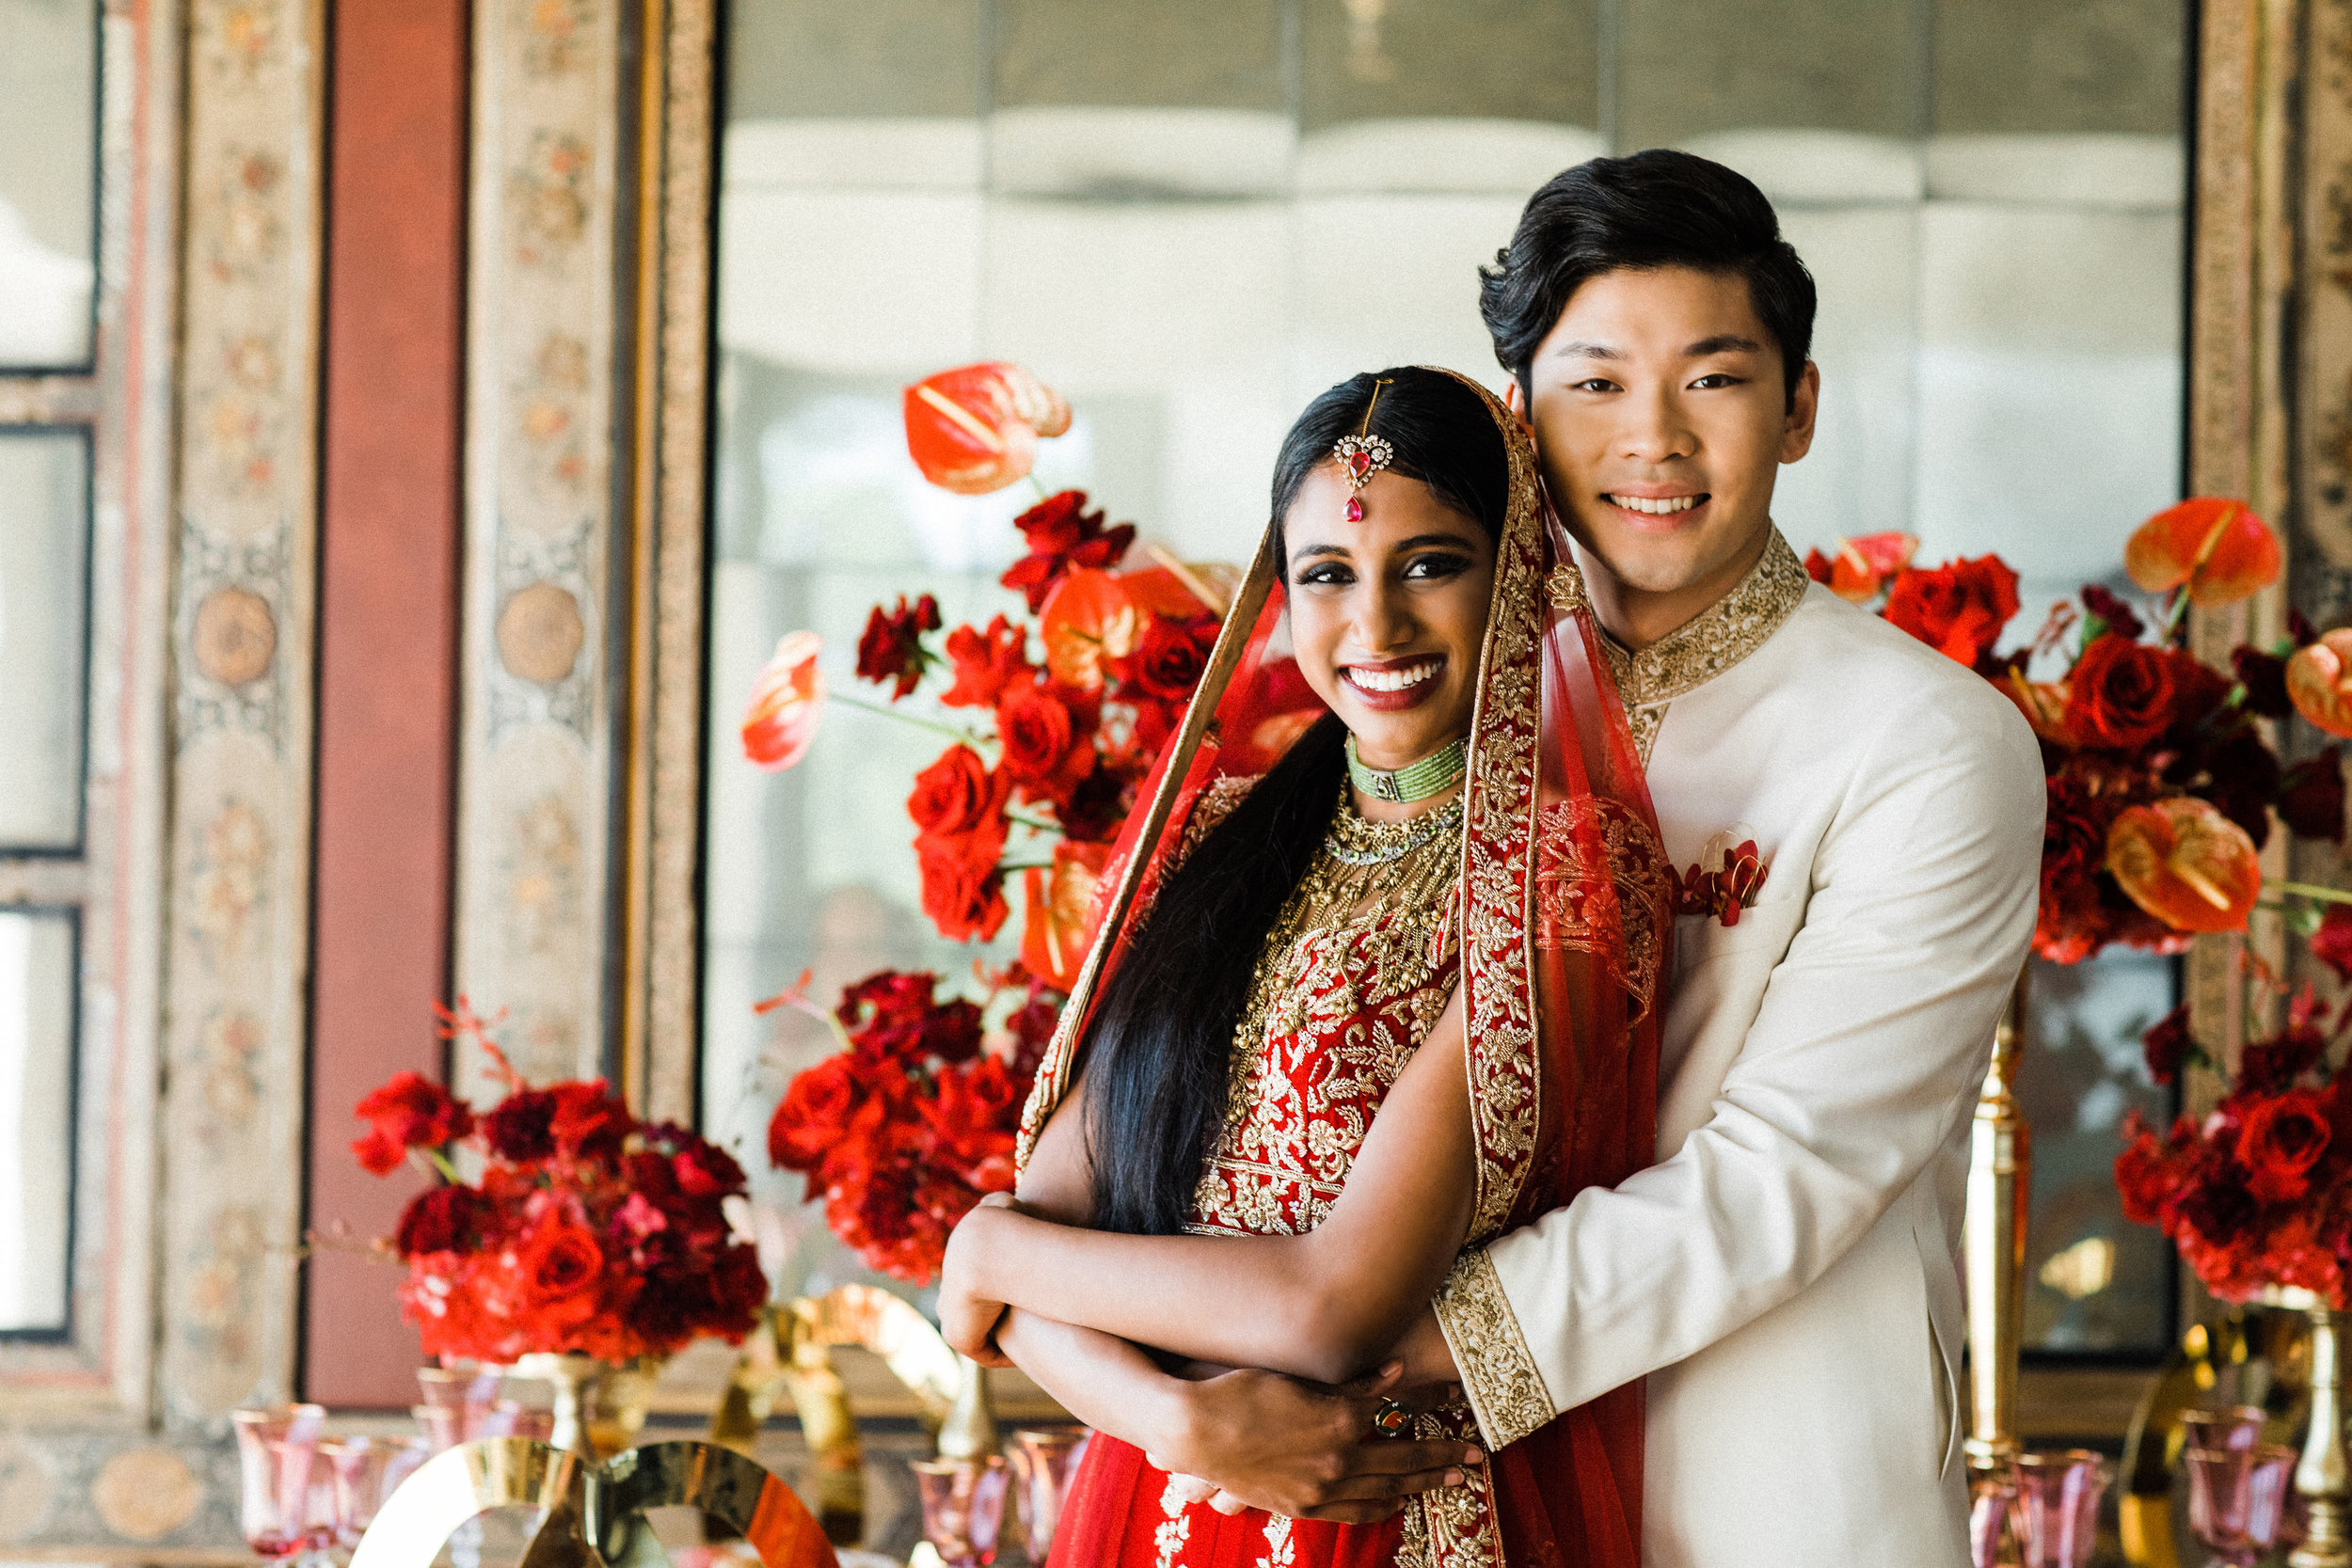 August In Bloom - Bride and groom at reception - Scarlet Sweetheart (Lavish Dulhan)